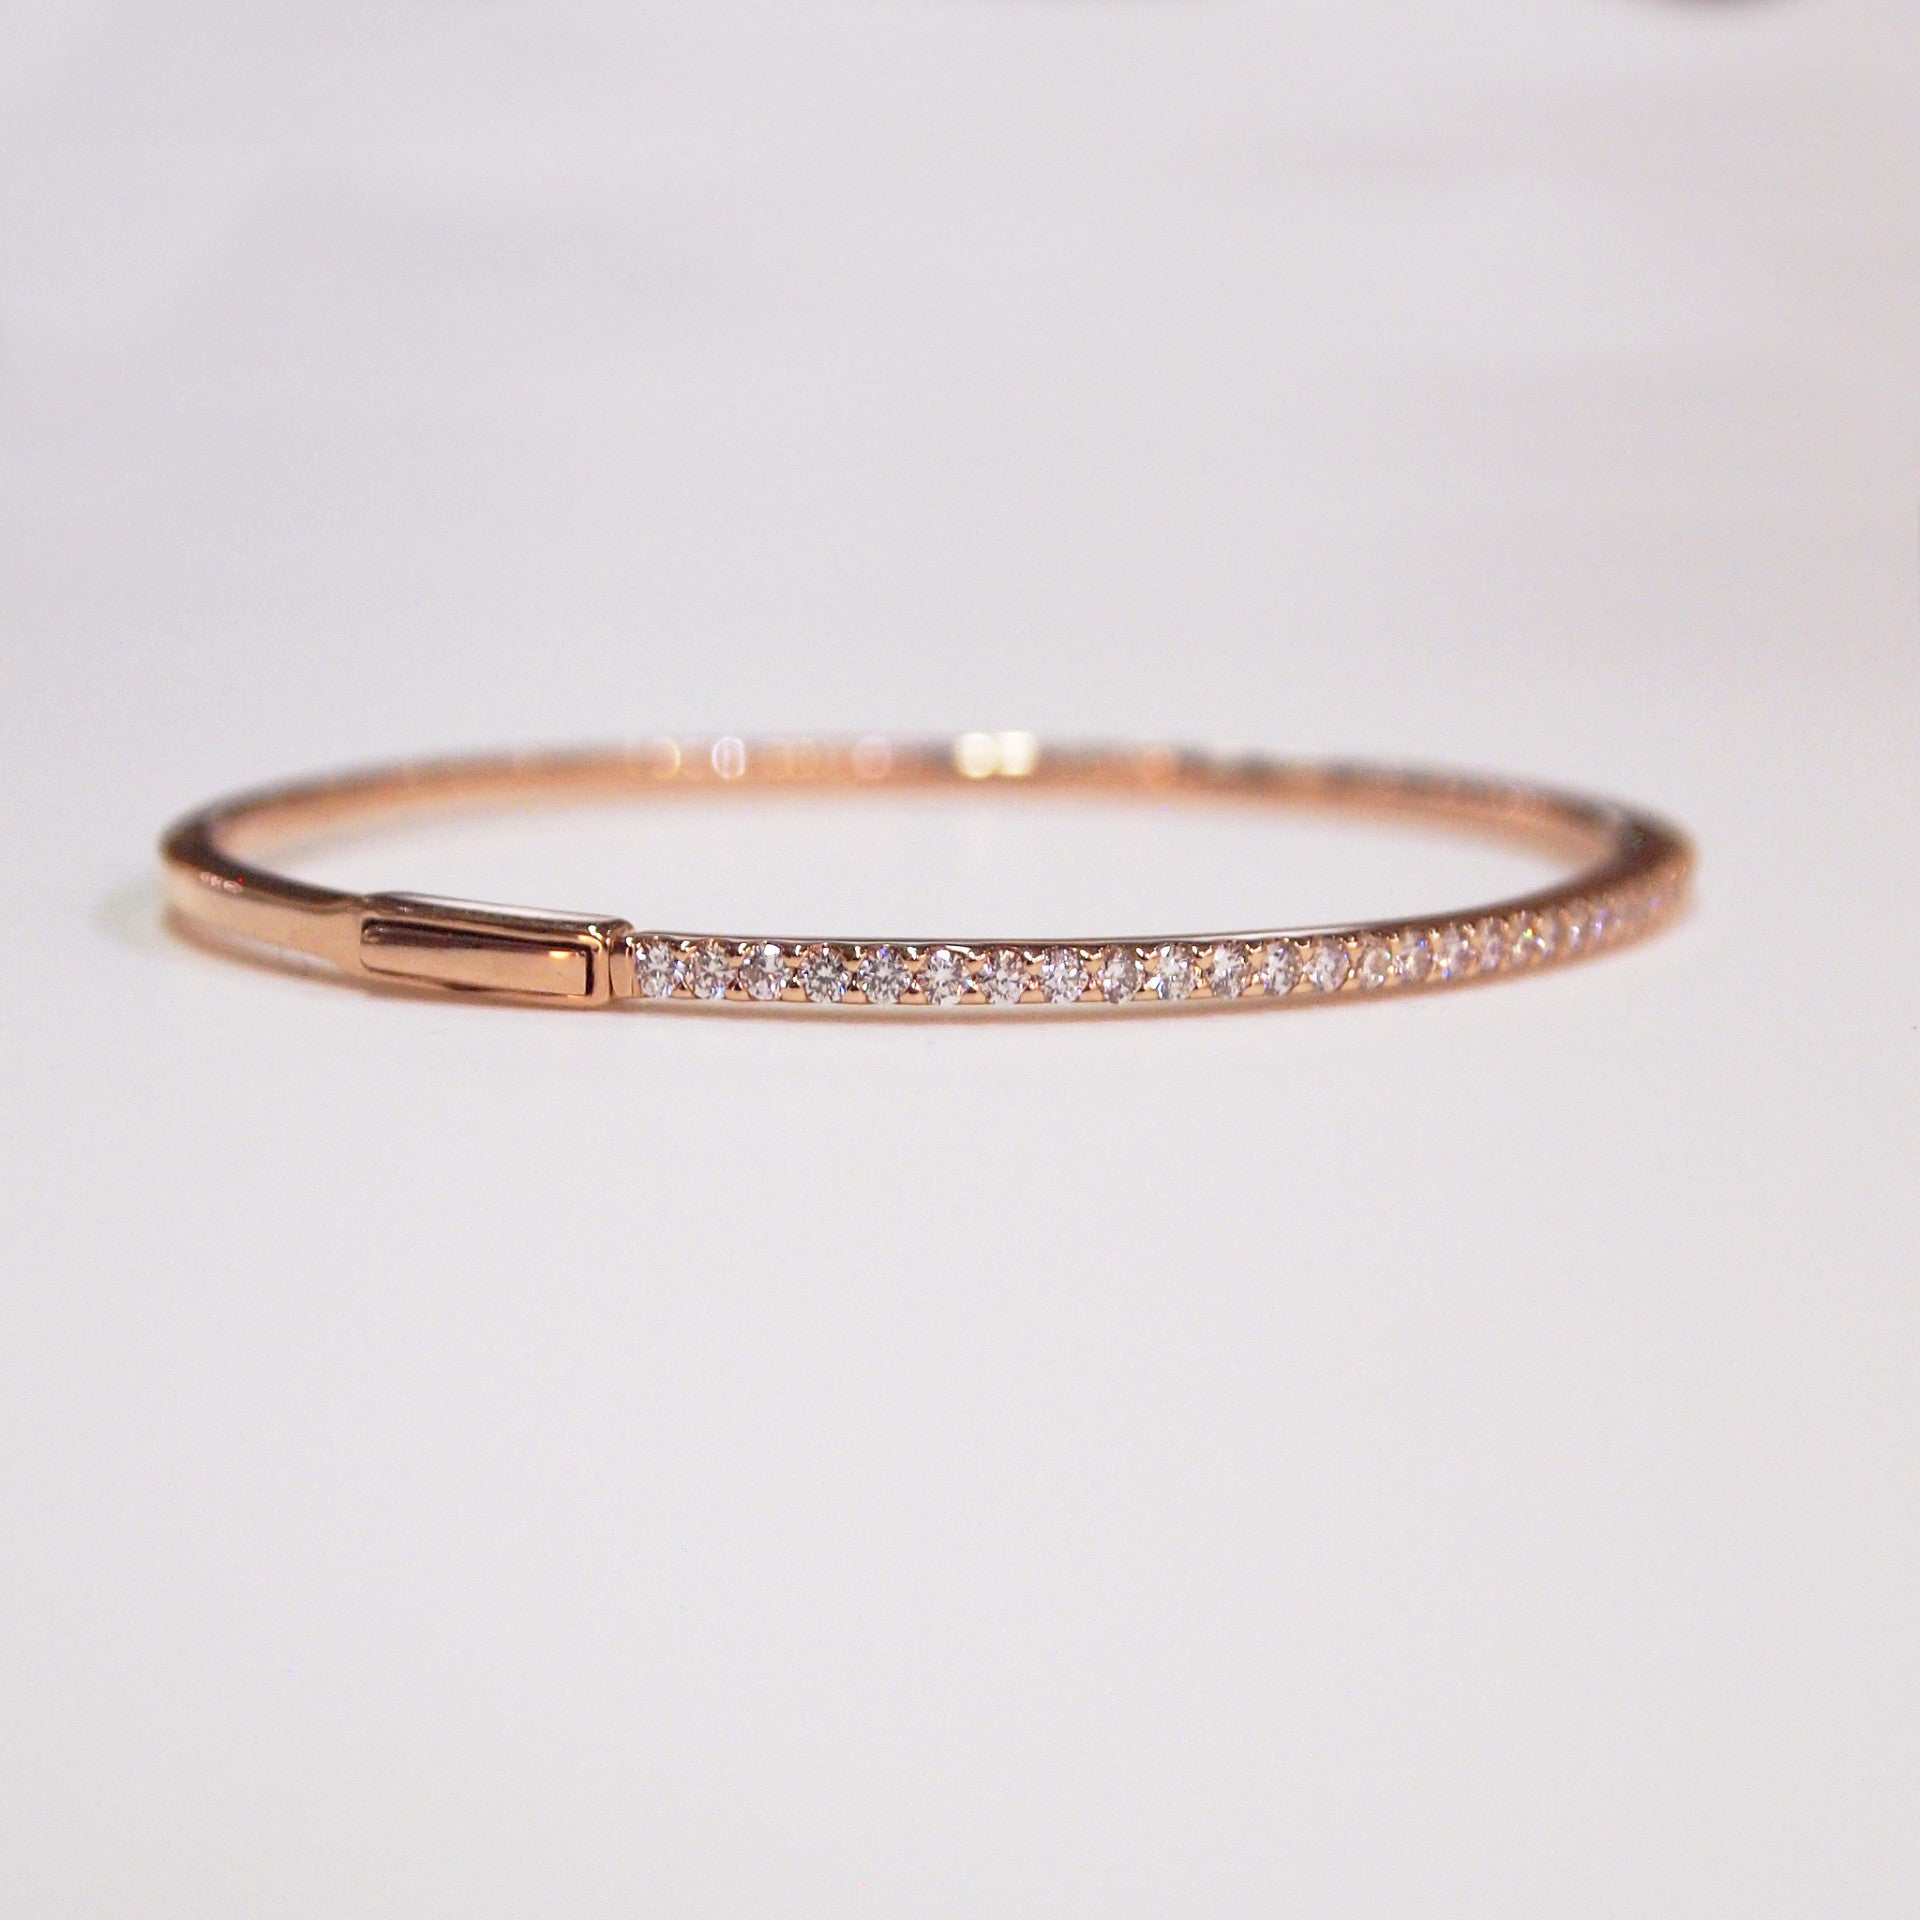 diamond phillips circle house gold always love wire bangle bracelet round bangles rose infinity